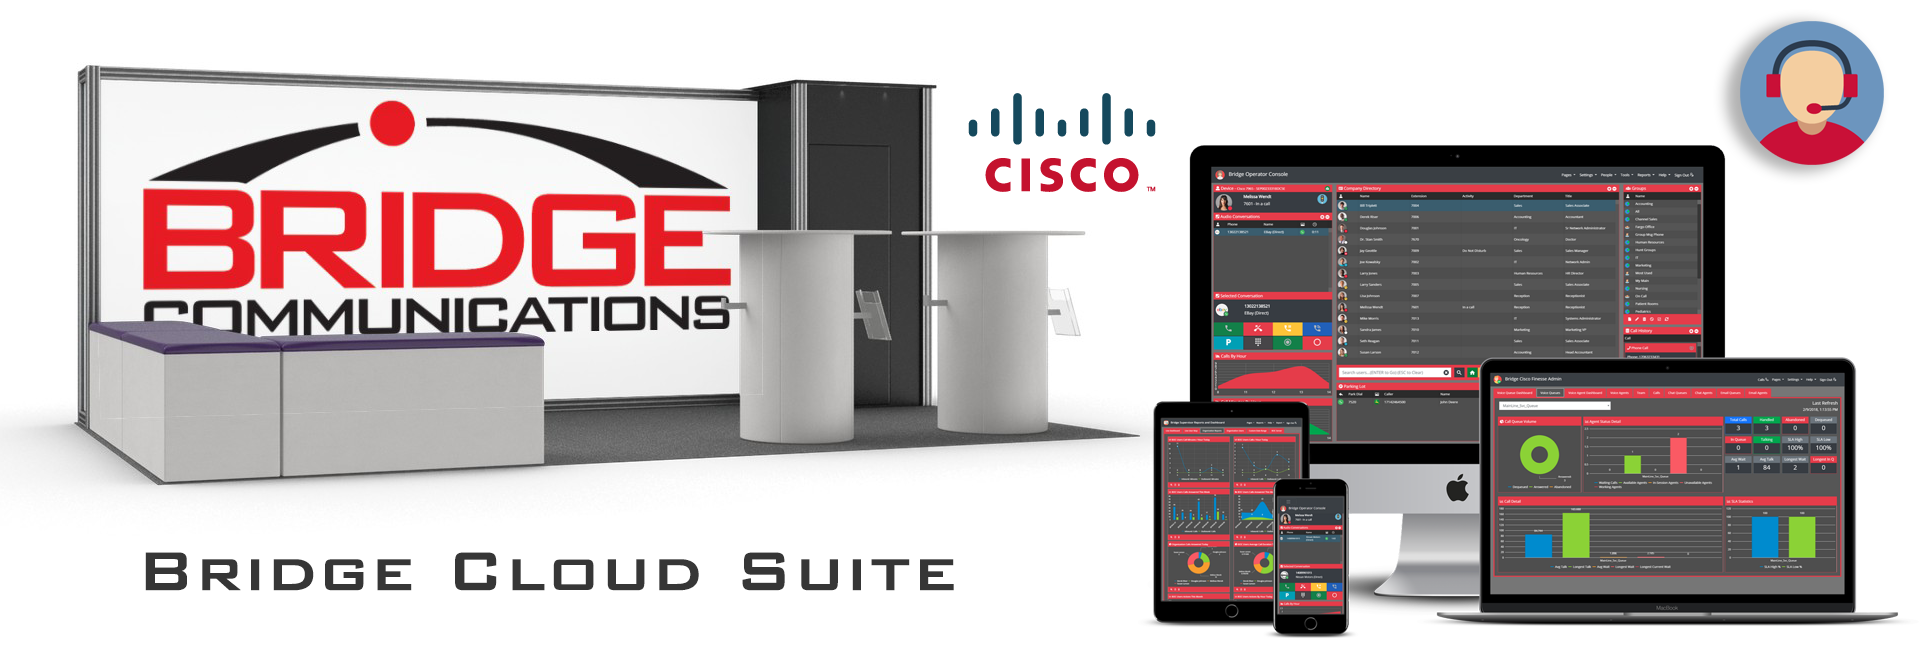 Bridge Operator Console - Products for Cisco CUCM